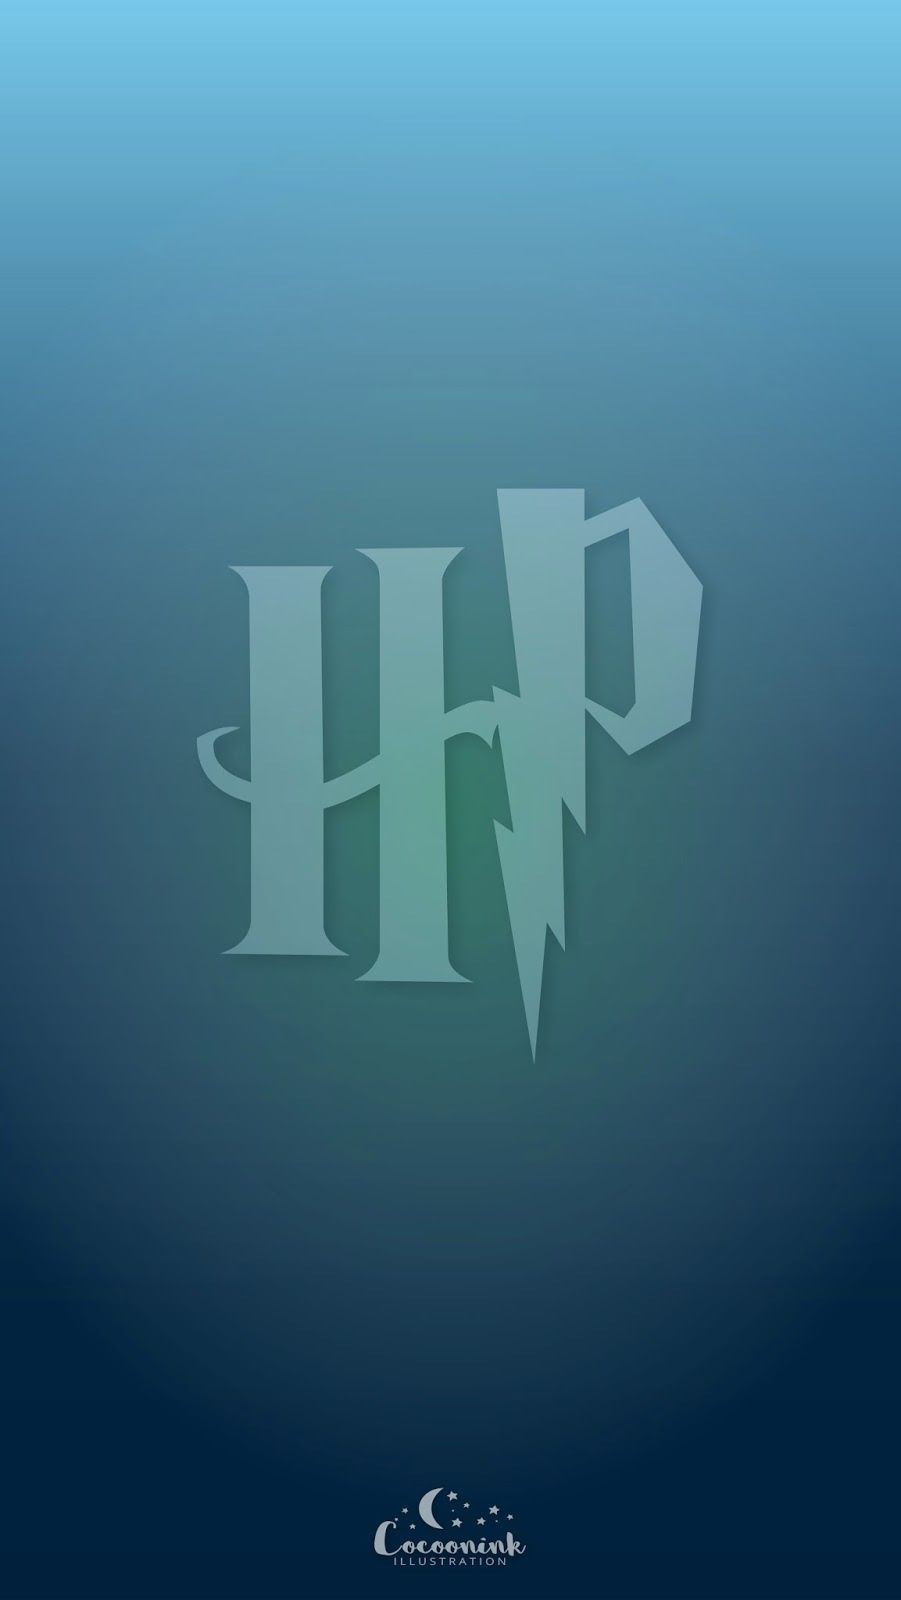 Top Wallpaper Harry Potter Smartphone - 482745213ad2f4f91296088f00af17a4  Snapshot_585.jpg